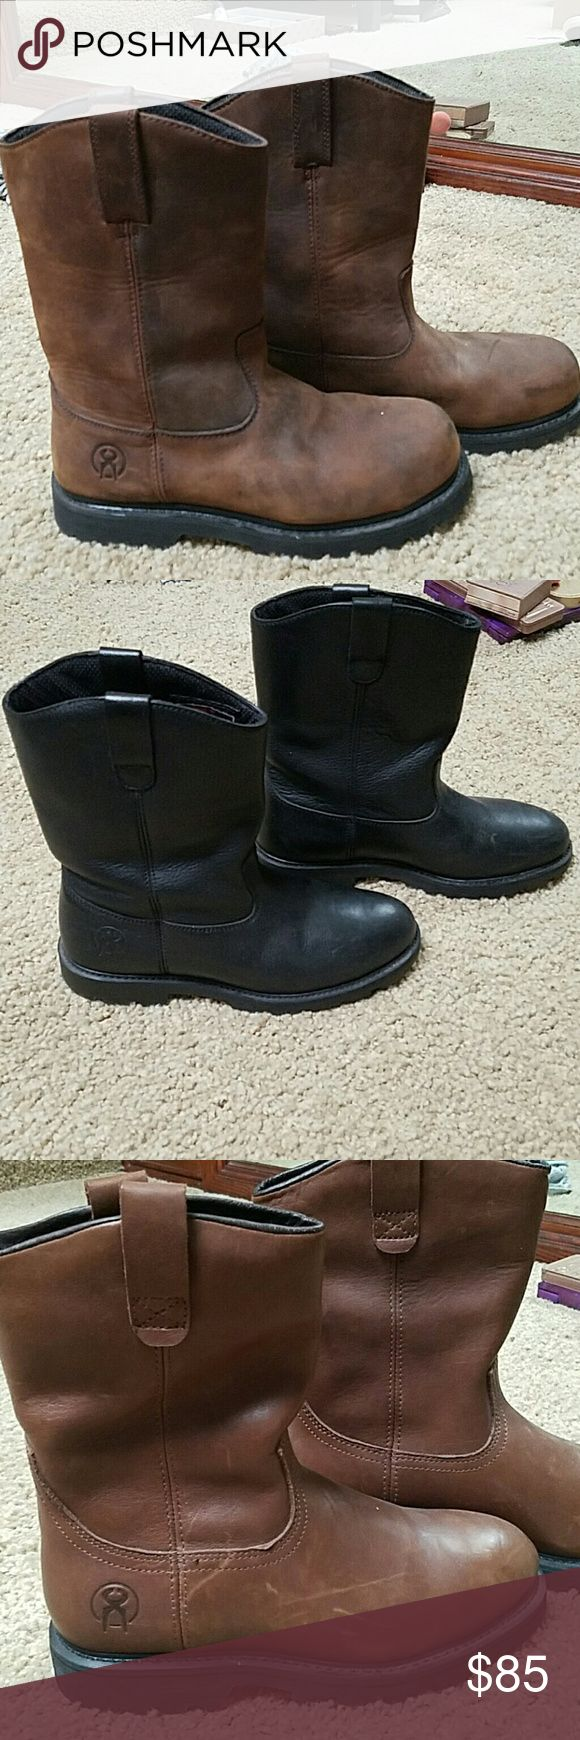 JESSE JAMES Work Boots Brand New Never Worn. JESSE James from West Coast Choppers work boots. From his collection. 3 pairs total. One black and two brown. West Coast Choppers Shoes Boots